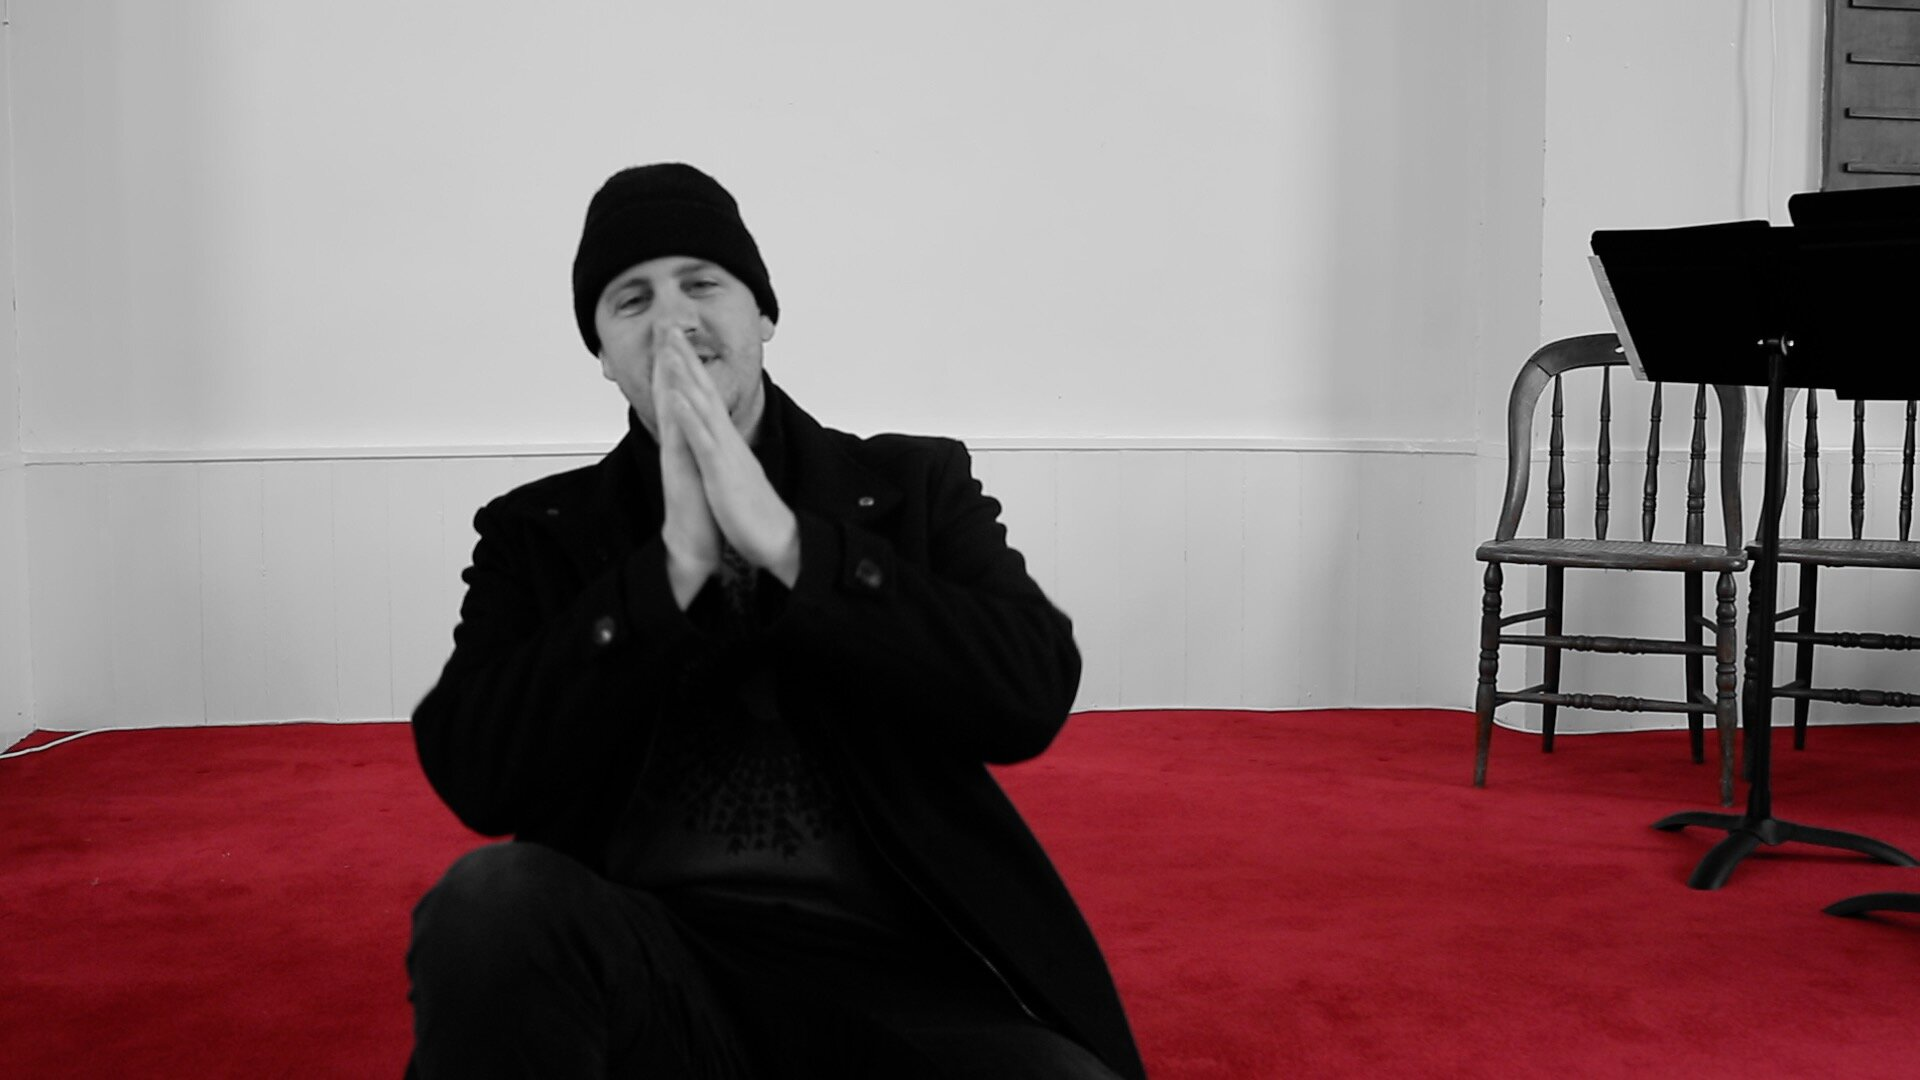 selective-color-jackson-whalan-music-video-church-hip-hop-rapper-prayer-black-and-white.jpg